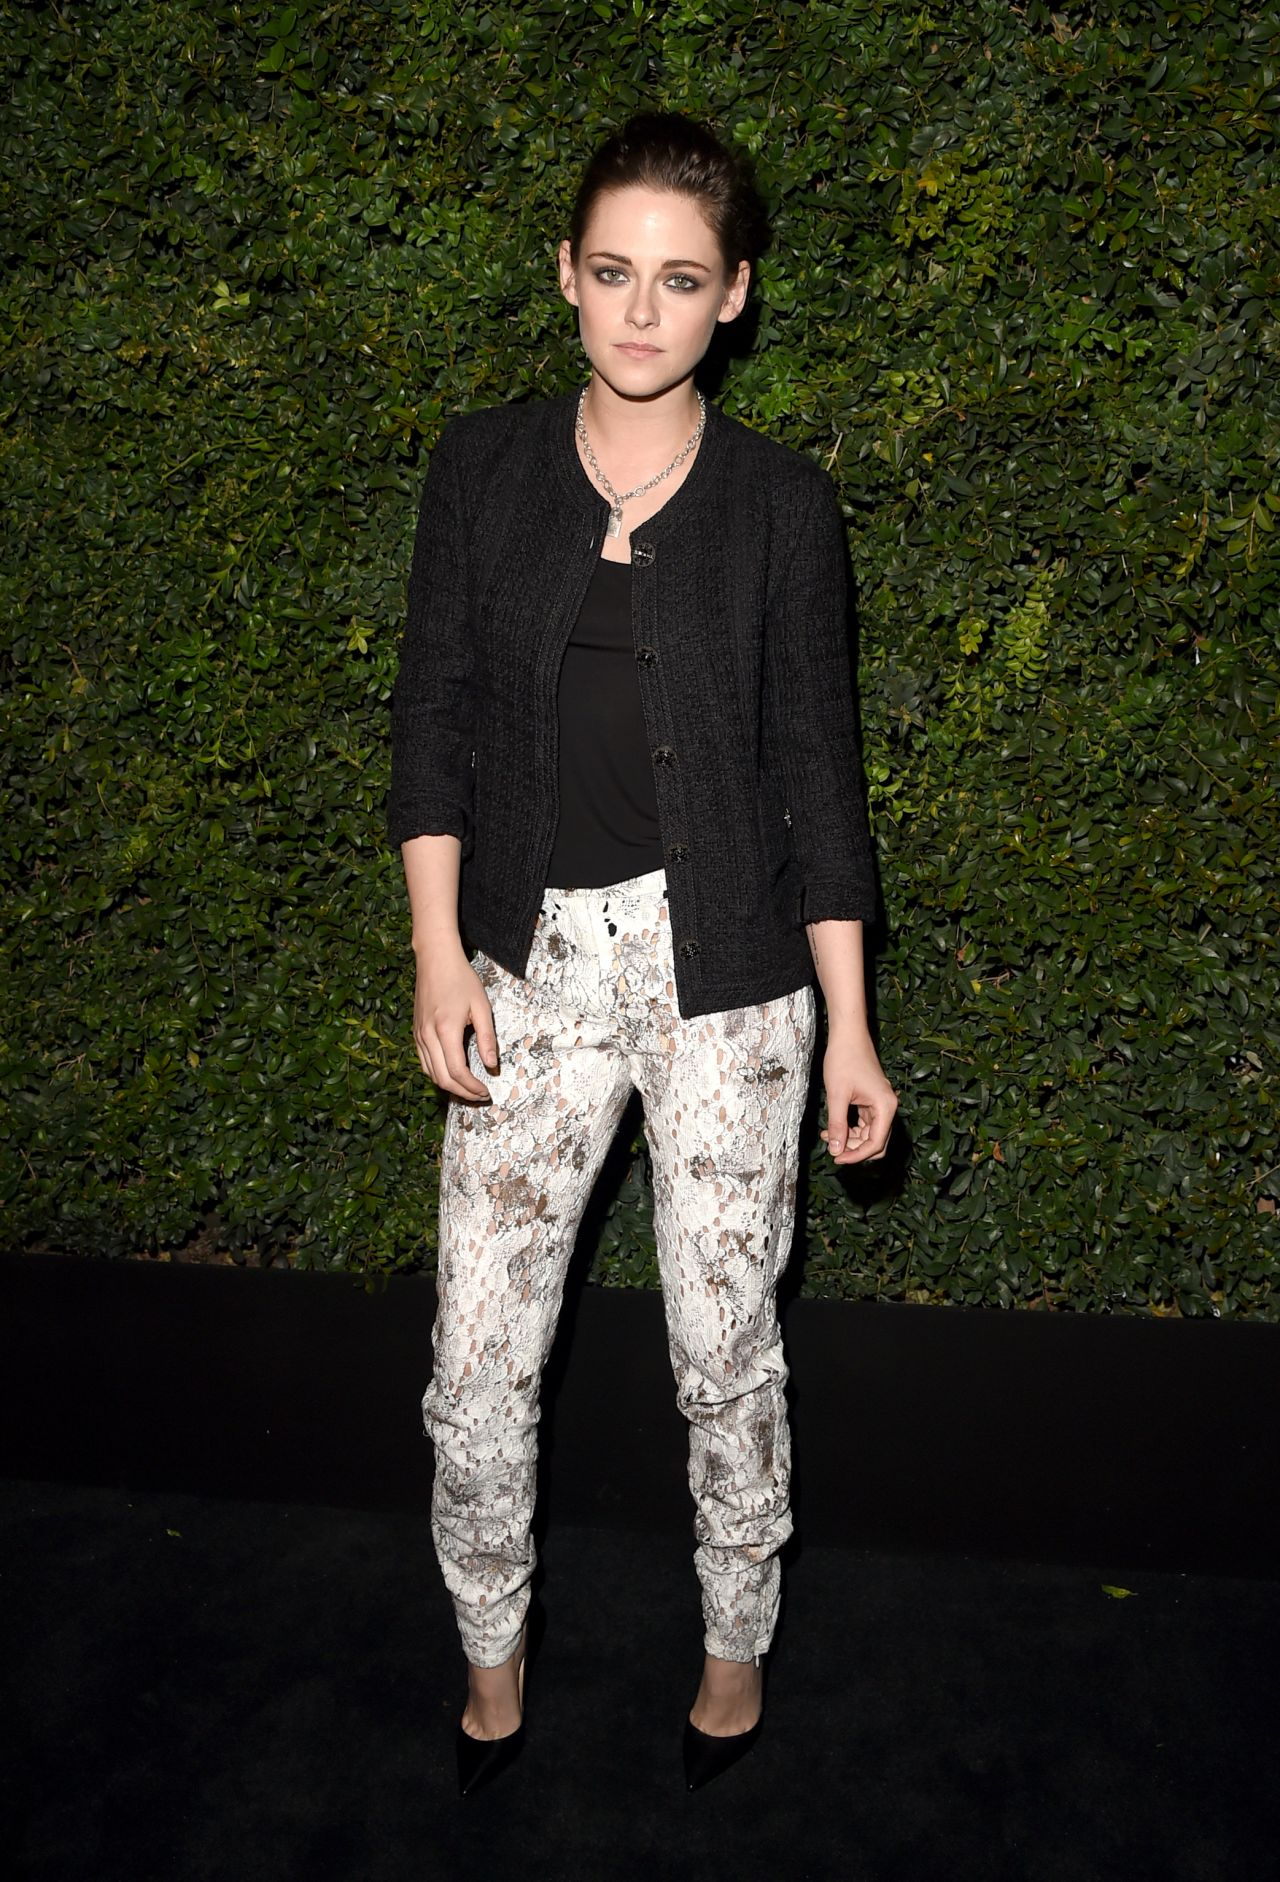 kristen-stewart-chanel-and-charles-finch-oscar-party-in-los-angeles-ca-2-27-2016-2